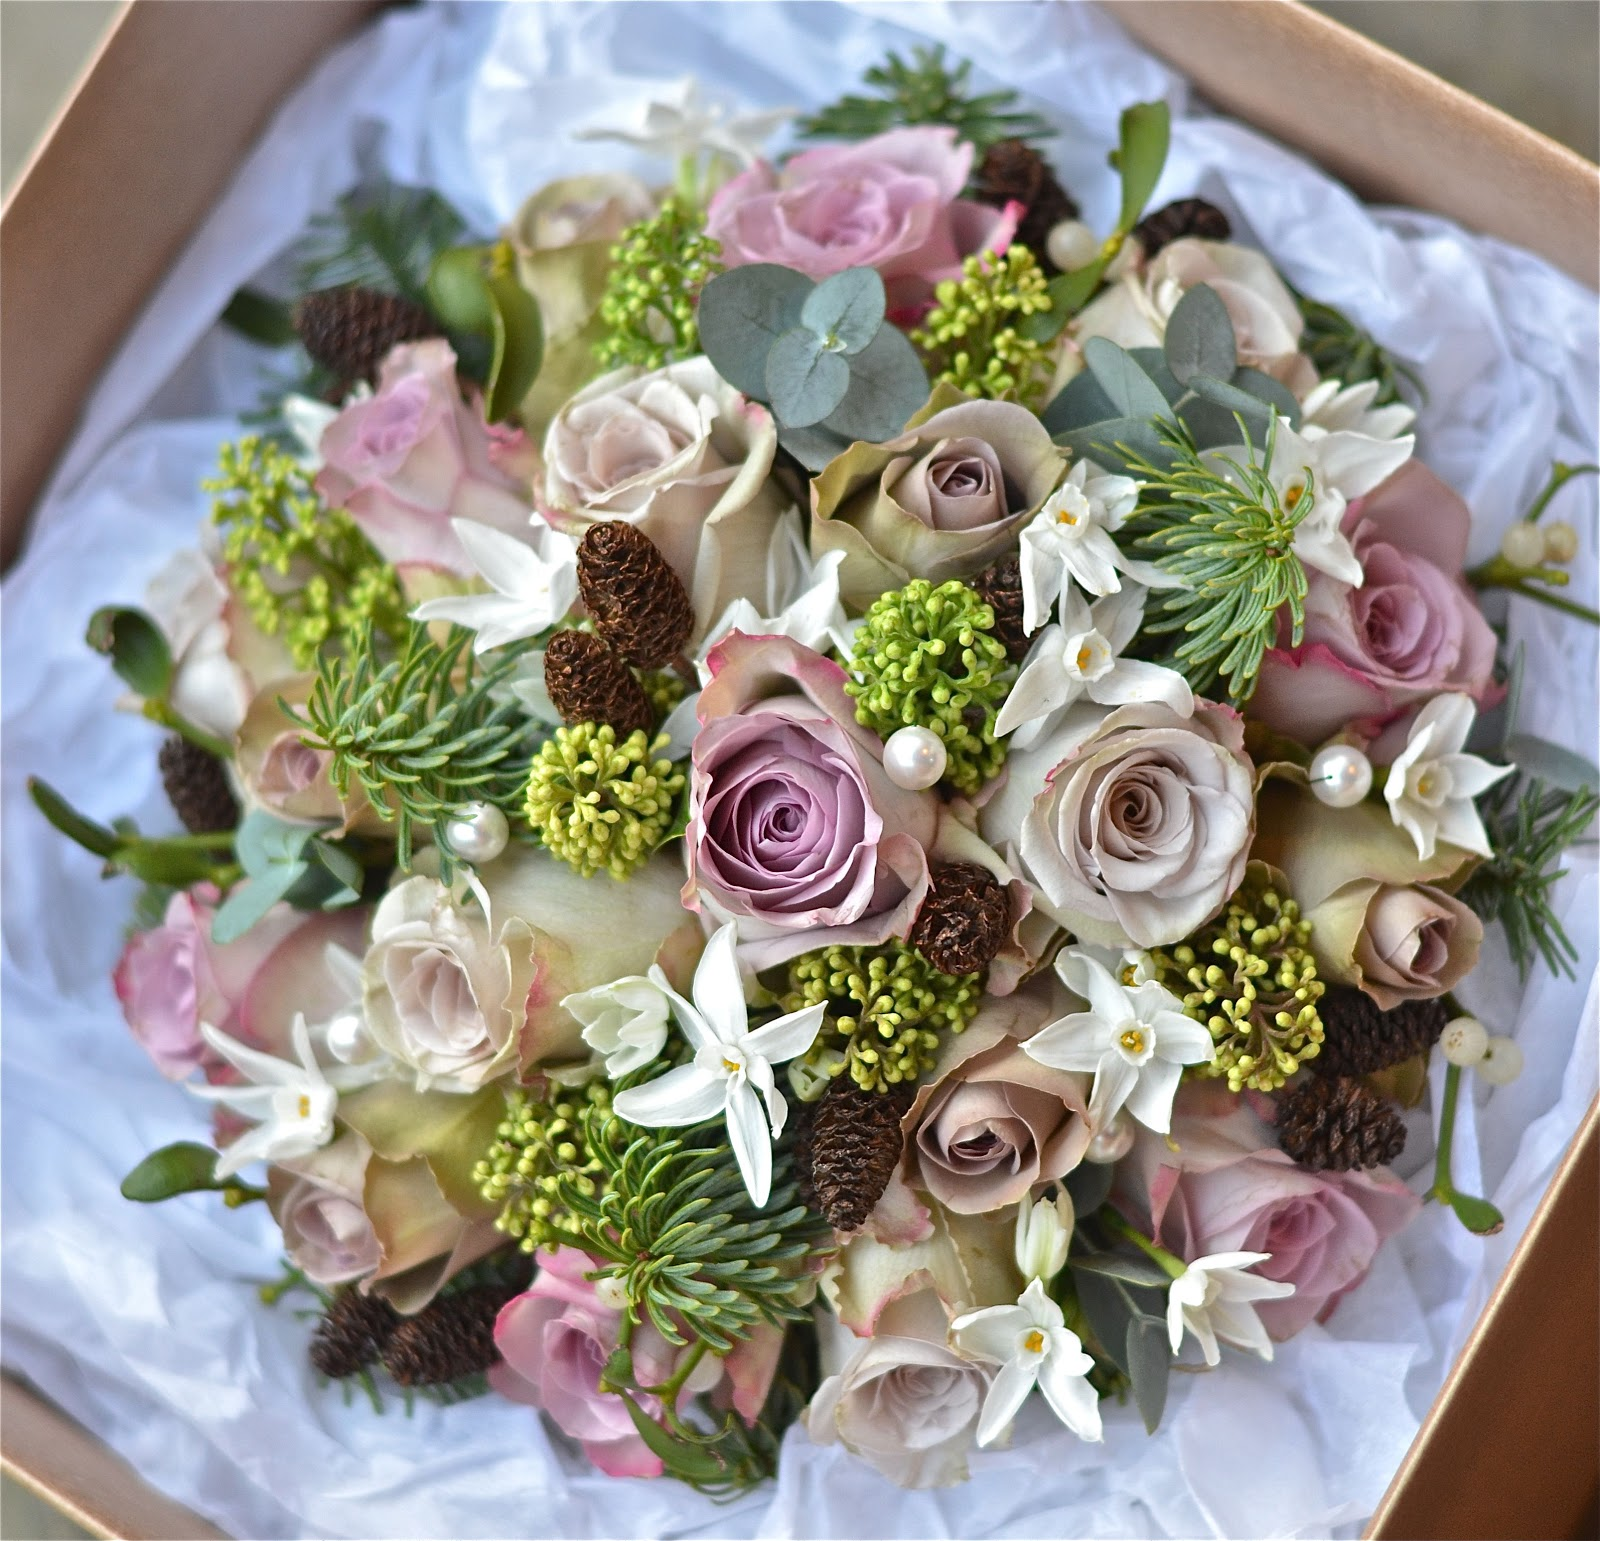 Best Flowers For Winter Wedding: Wedding Flowers Blog: December 2012